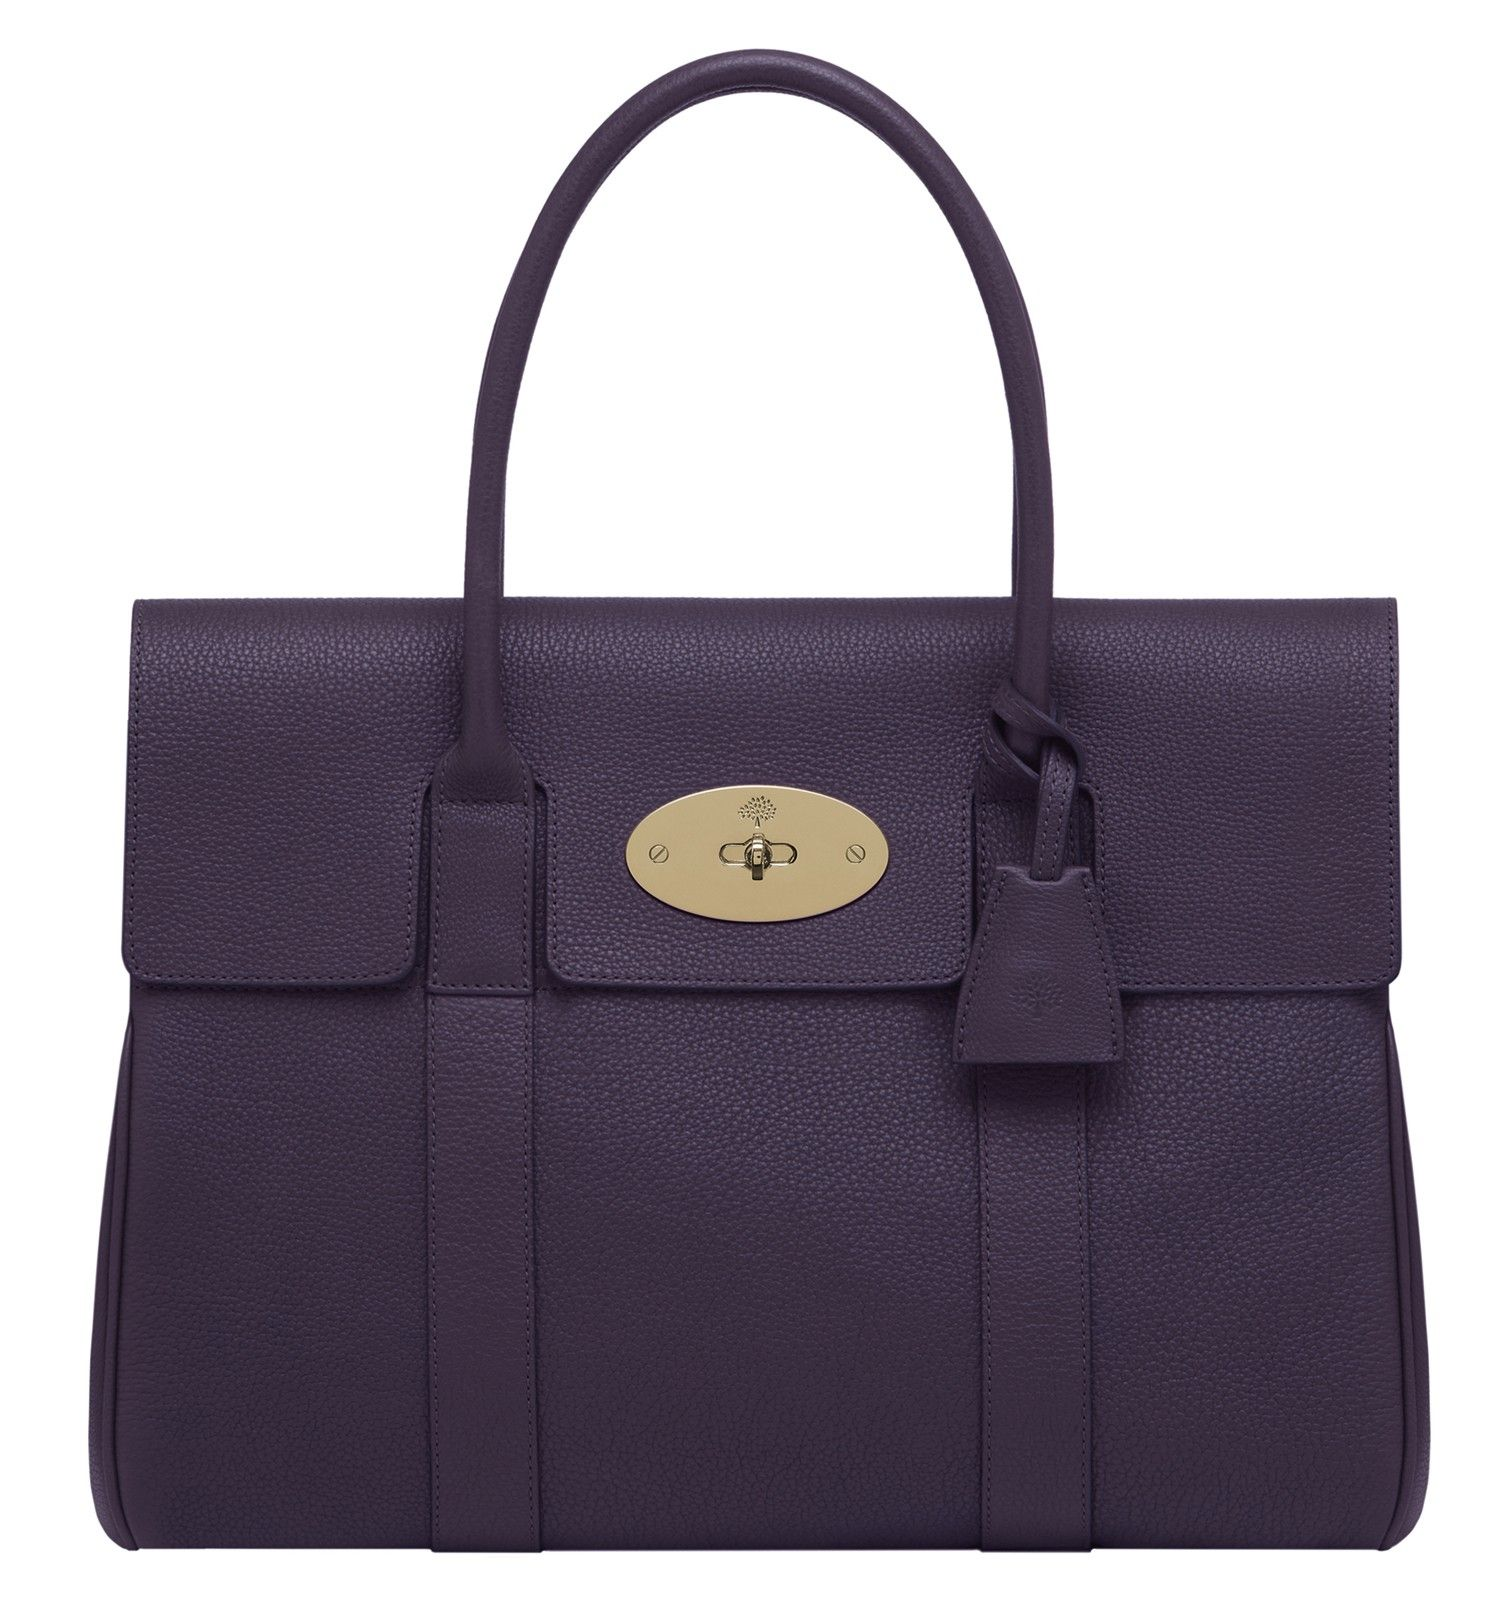 Bayswater bag by  Mulberry   Mullberry handbags...   Pinterest   Bag ... 5c3b13c359